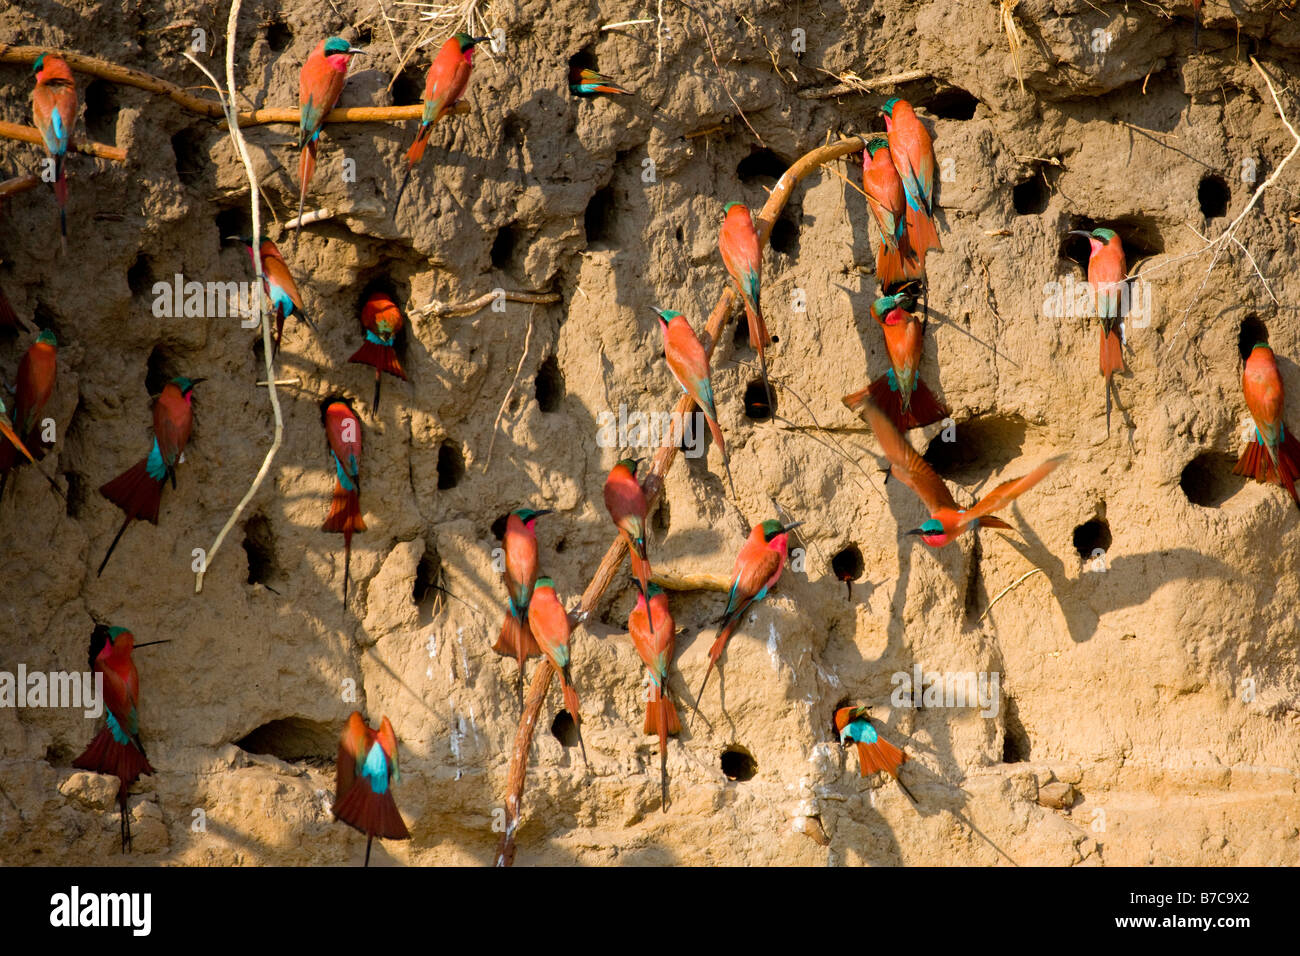 Southern Carmine Bee-eaters at their Nests in the Mud Wall River Bank in the Okavango Panhandle, Botswana - Stock Image